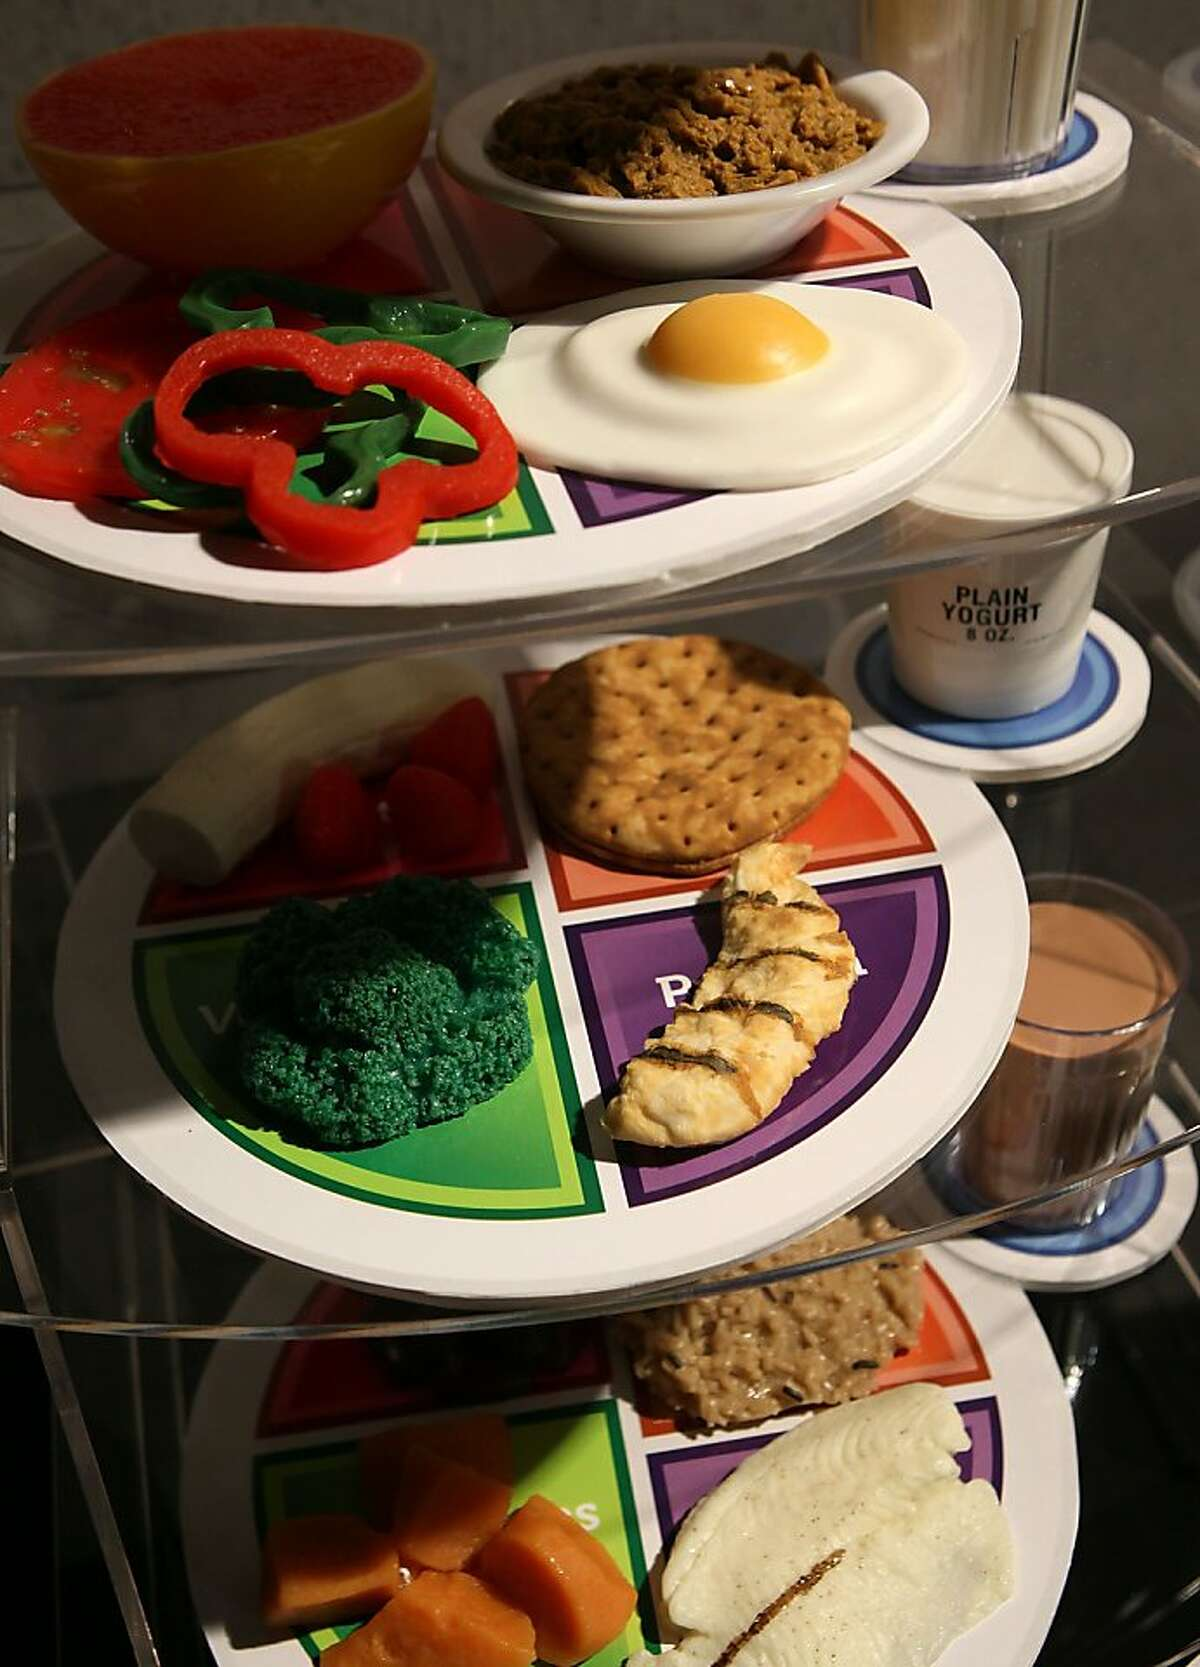 Food Pyramid Is Out Myplate In As Nutrition Guide